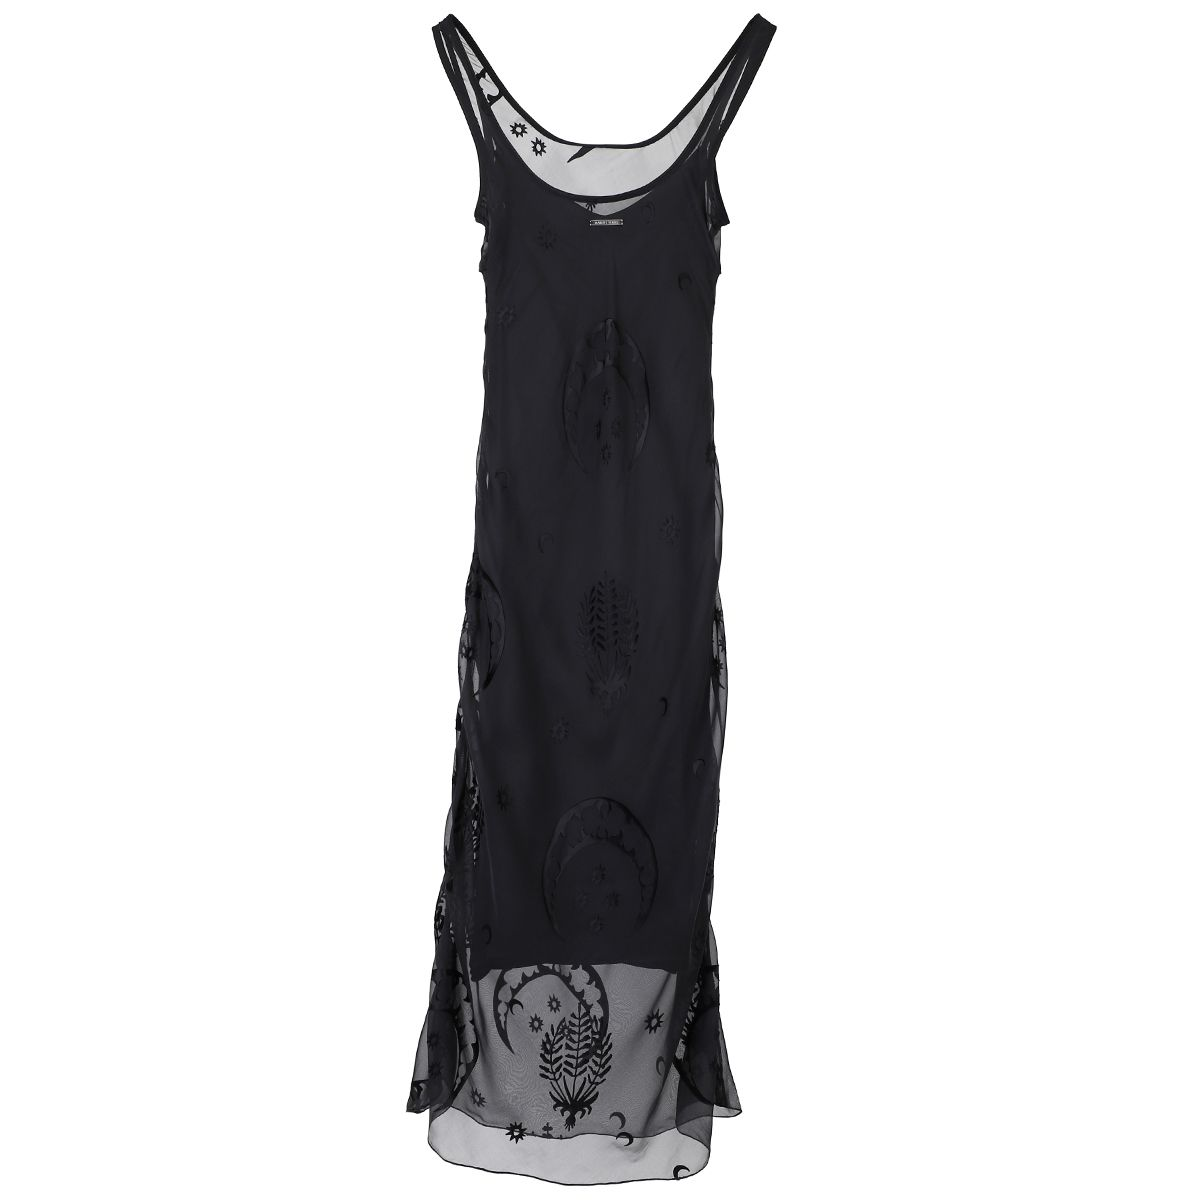 MARINE SERRE DEVORE DRESS / 01 : BLACK